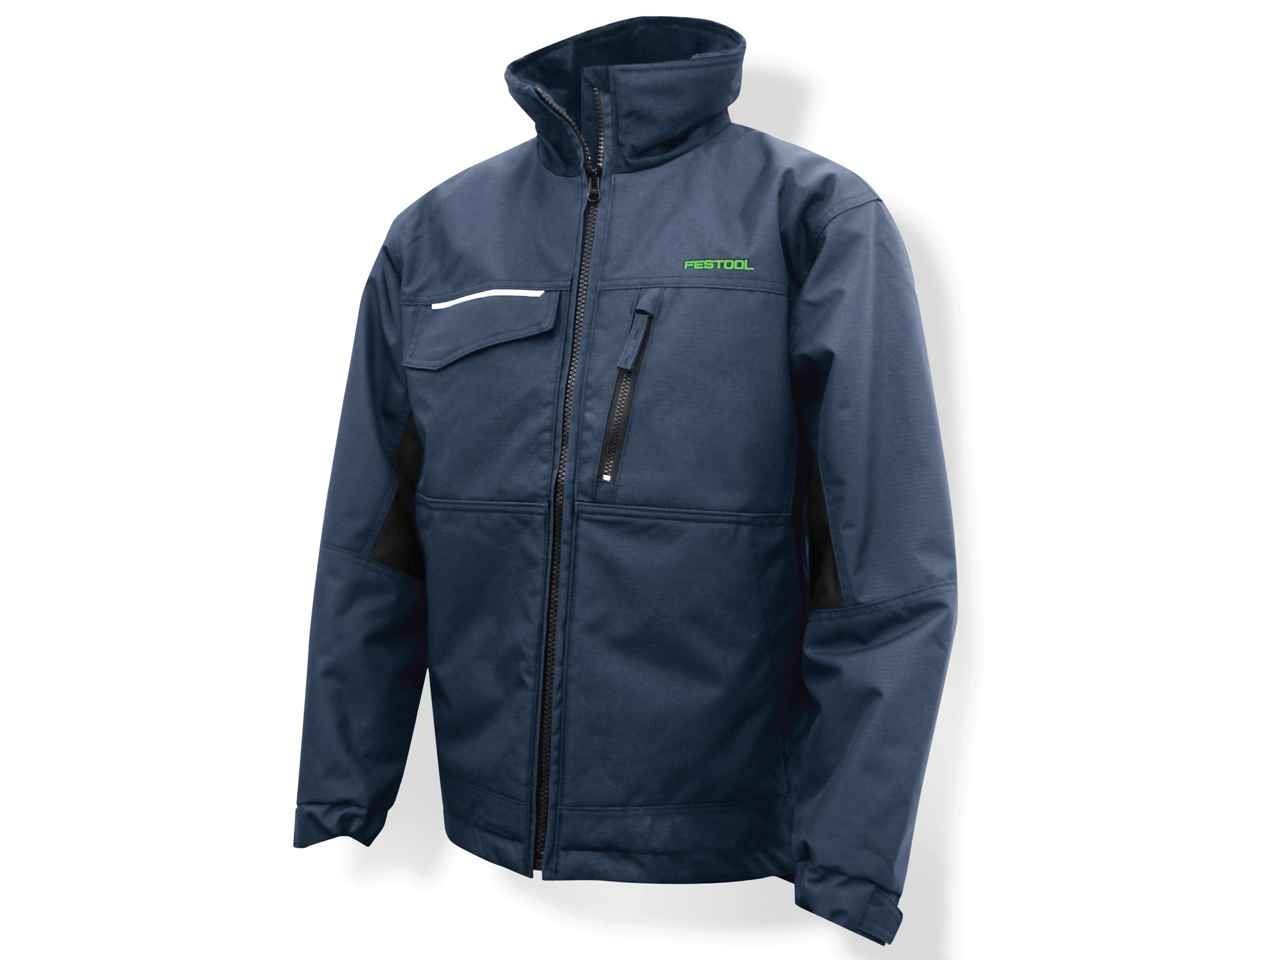 Festool 497902 Snickers Winter Jacket Men Dark Blue Small